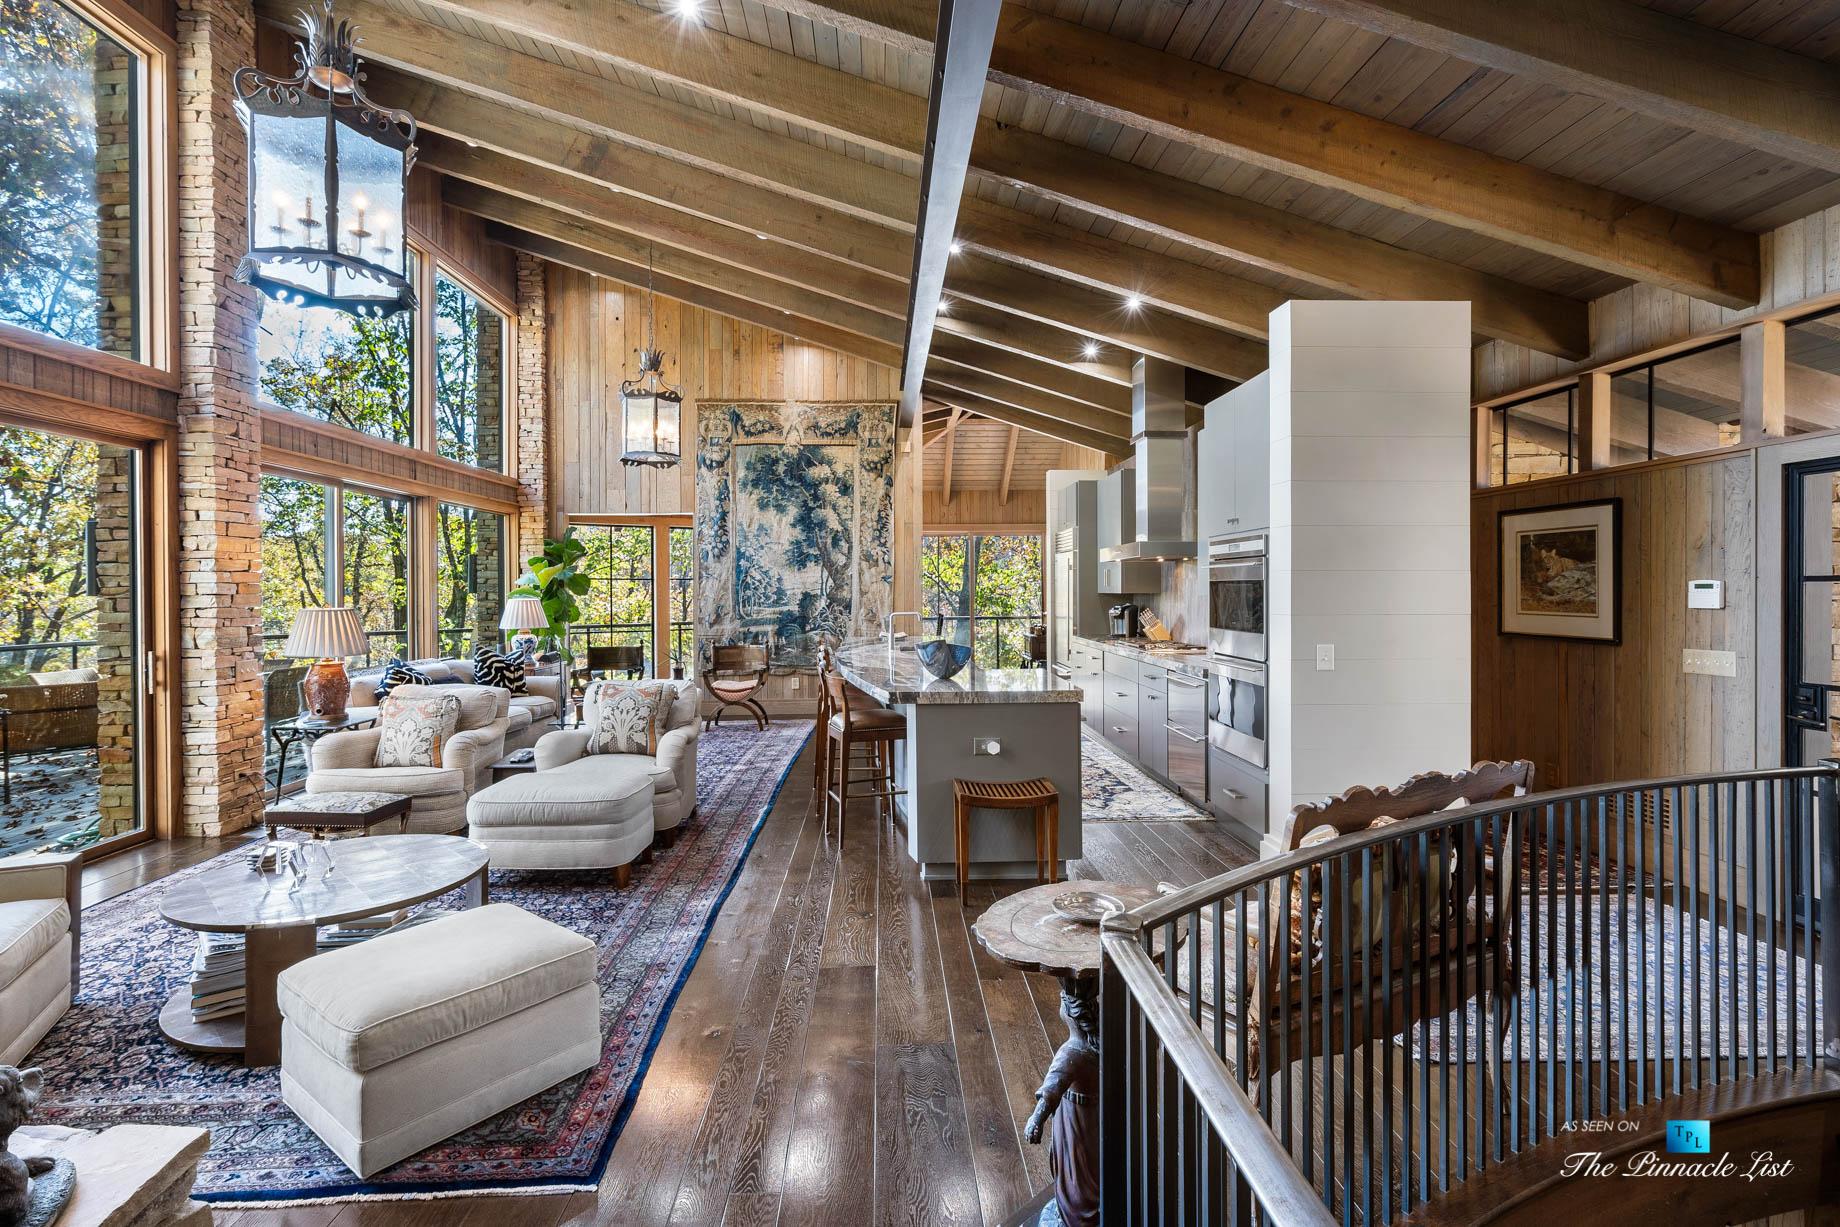 7860 Chestnut Hill Rd, Cumming, GA, USA – Living Room and Kitchen – Luxury Real Estate – Lake Lanier Mid-Century Modern Stone Home